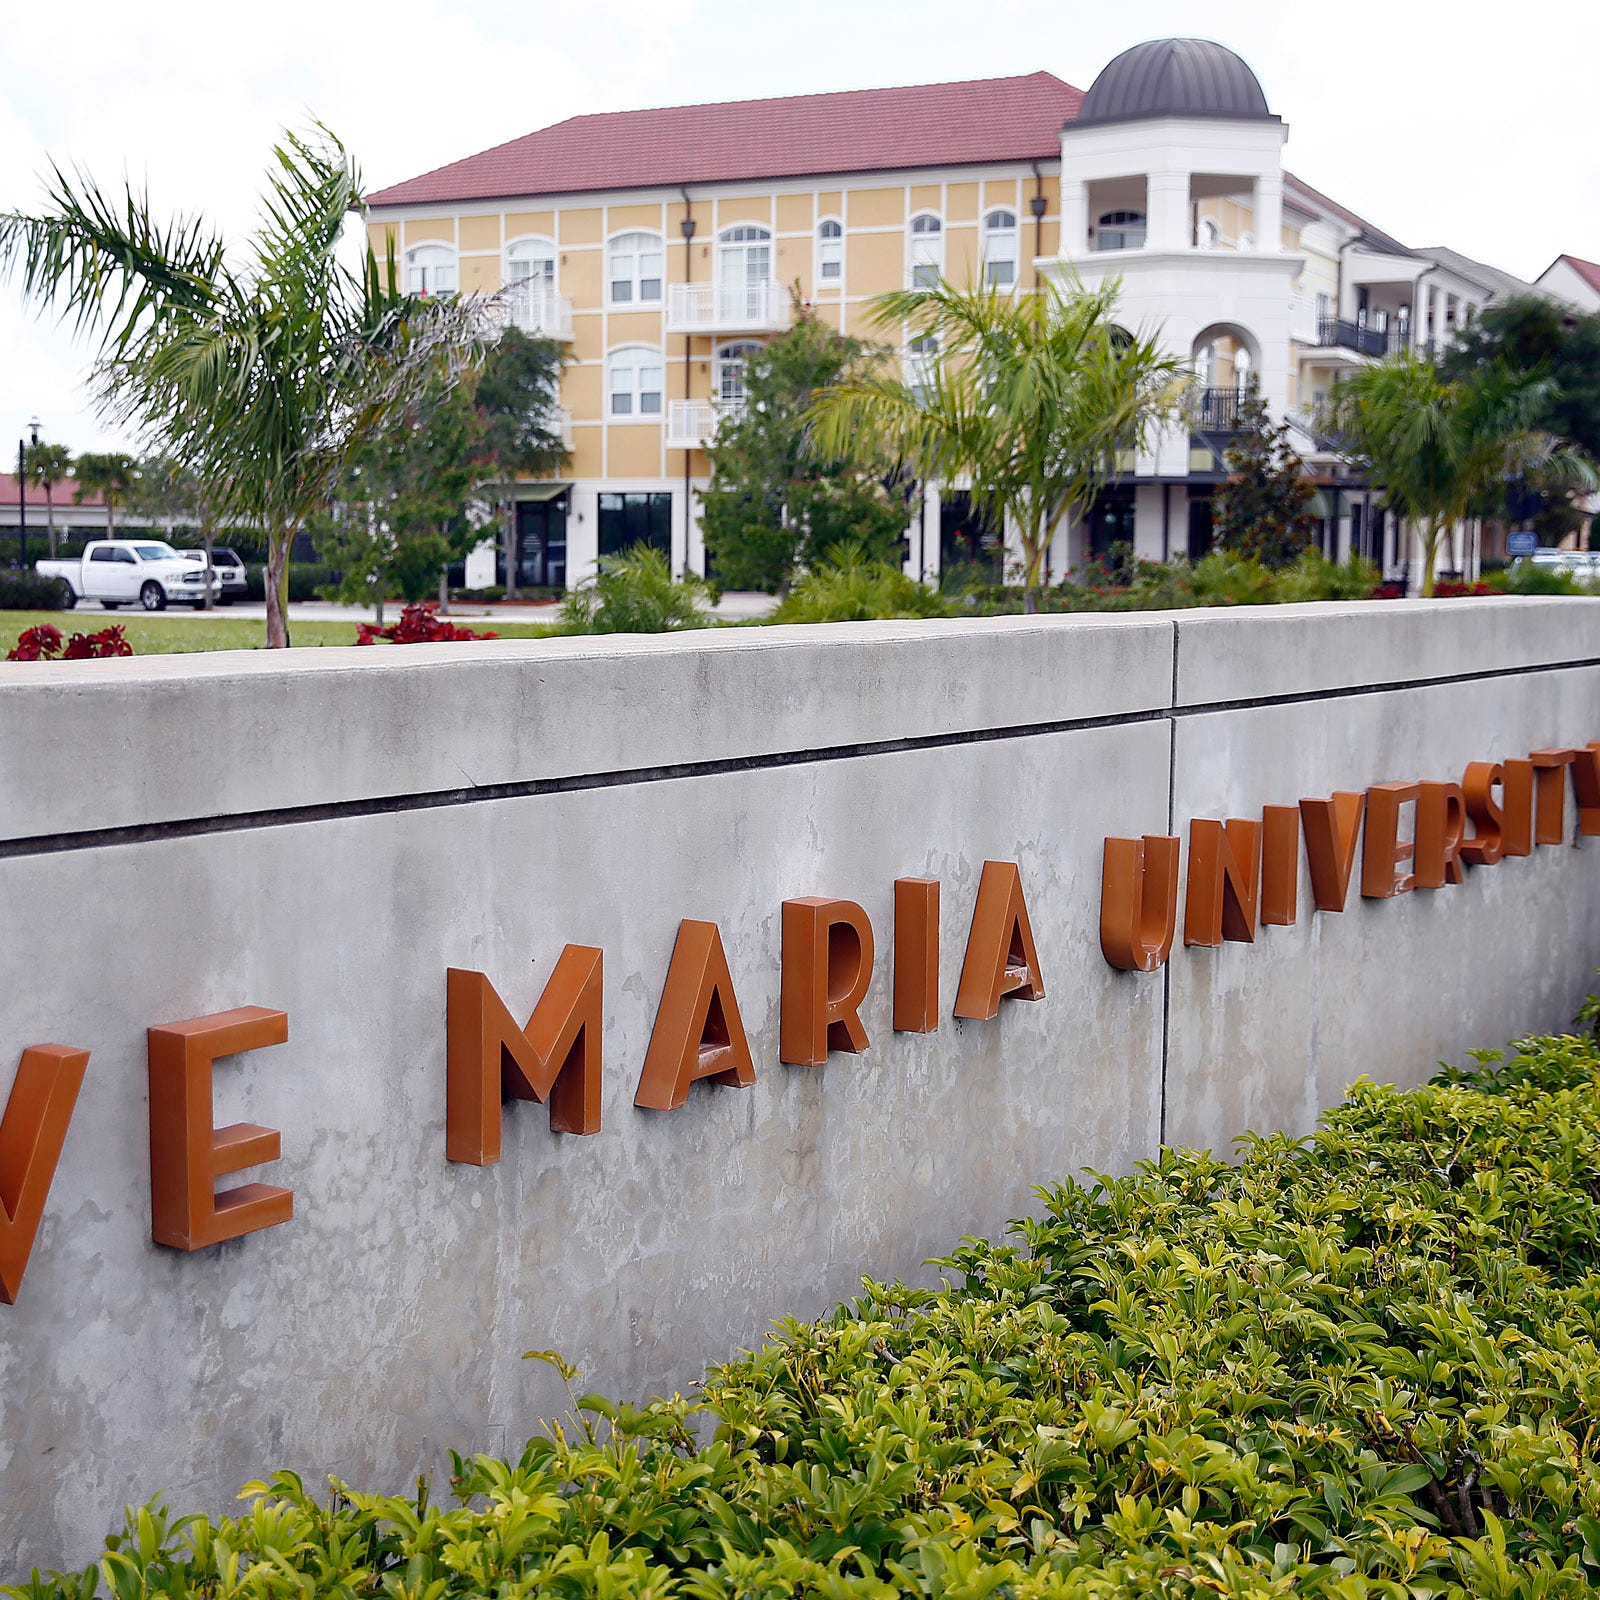 Textbook company sues Ave Maria University claiming breach of contract